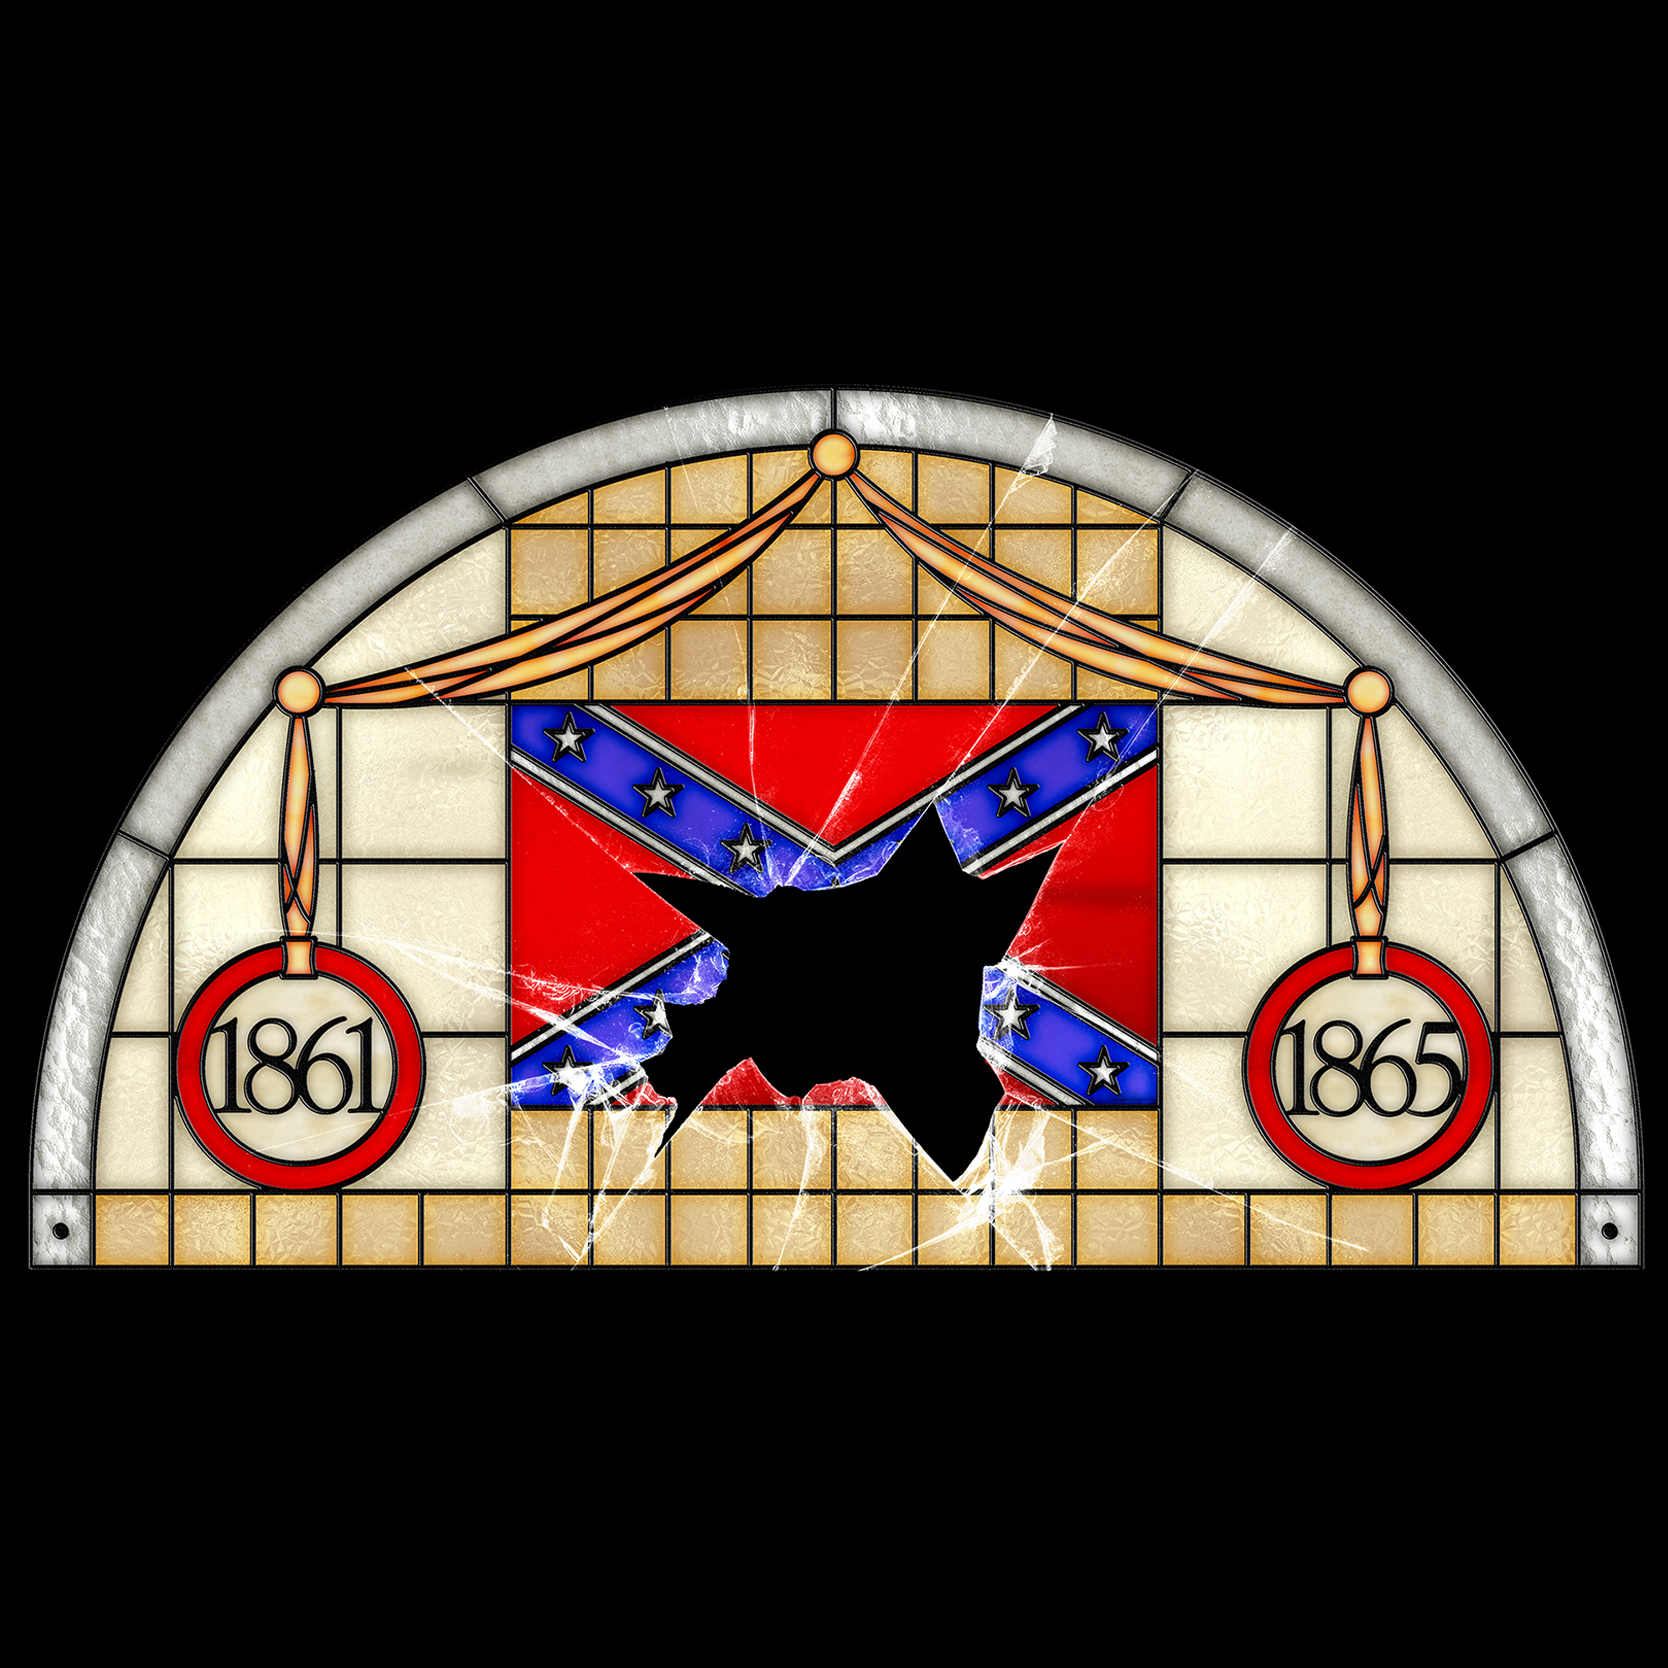 illustration of stained glass confederate flag with a cracked panel